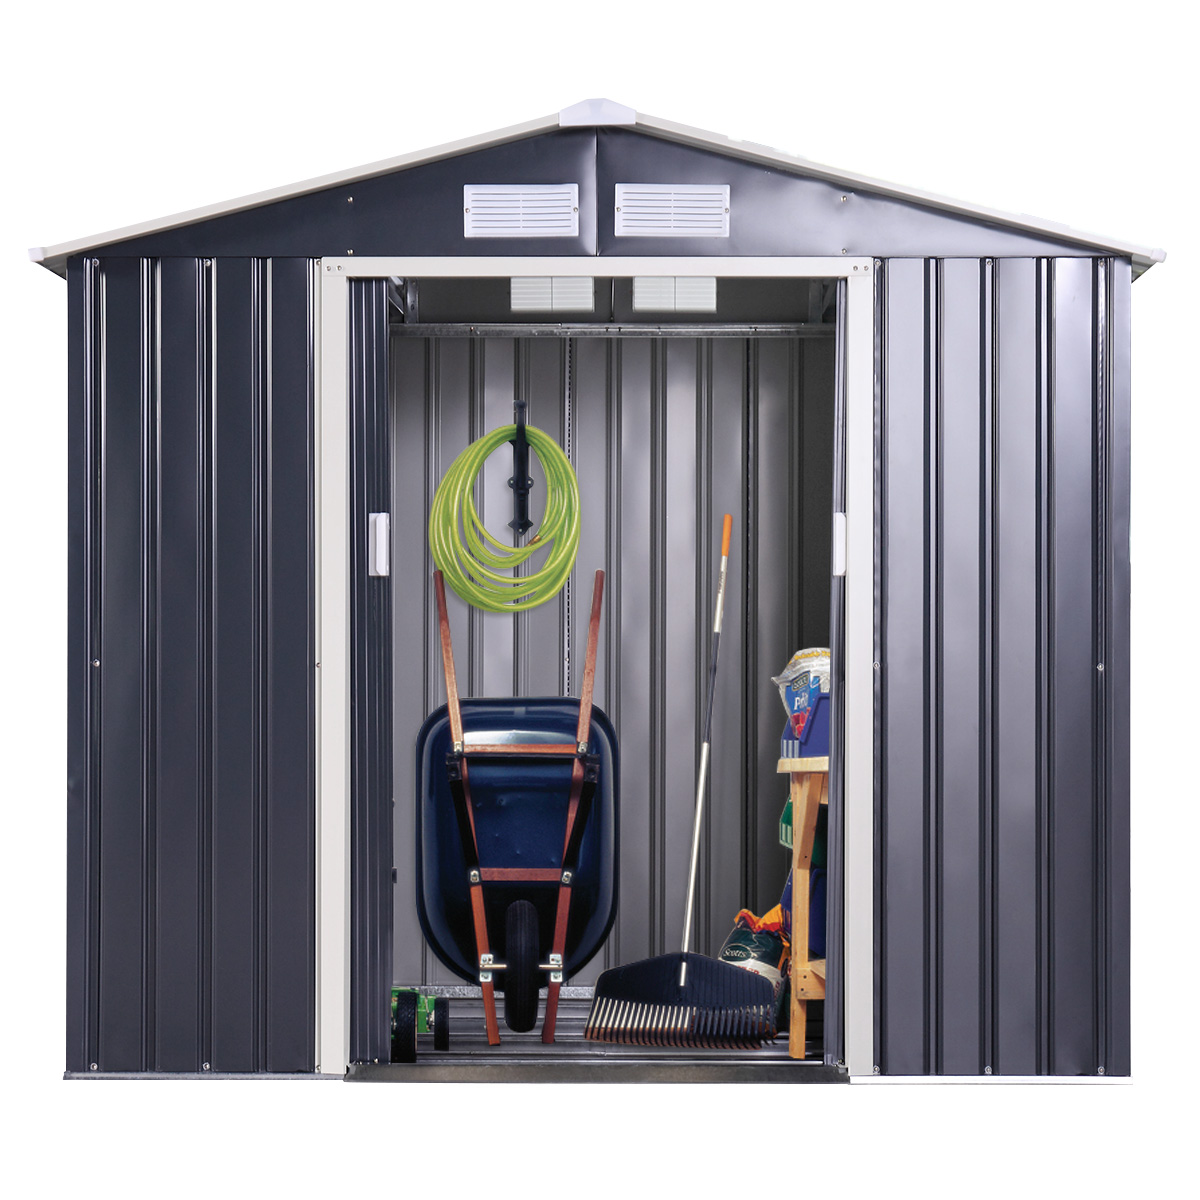 9 x 6 Ft Metal Garden Utility Storage Shed Outdoor Backyard Heavy Duty Tool House Dark Gray